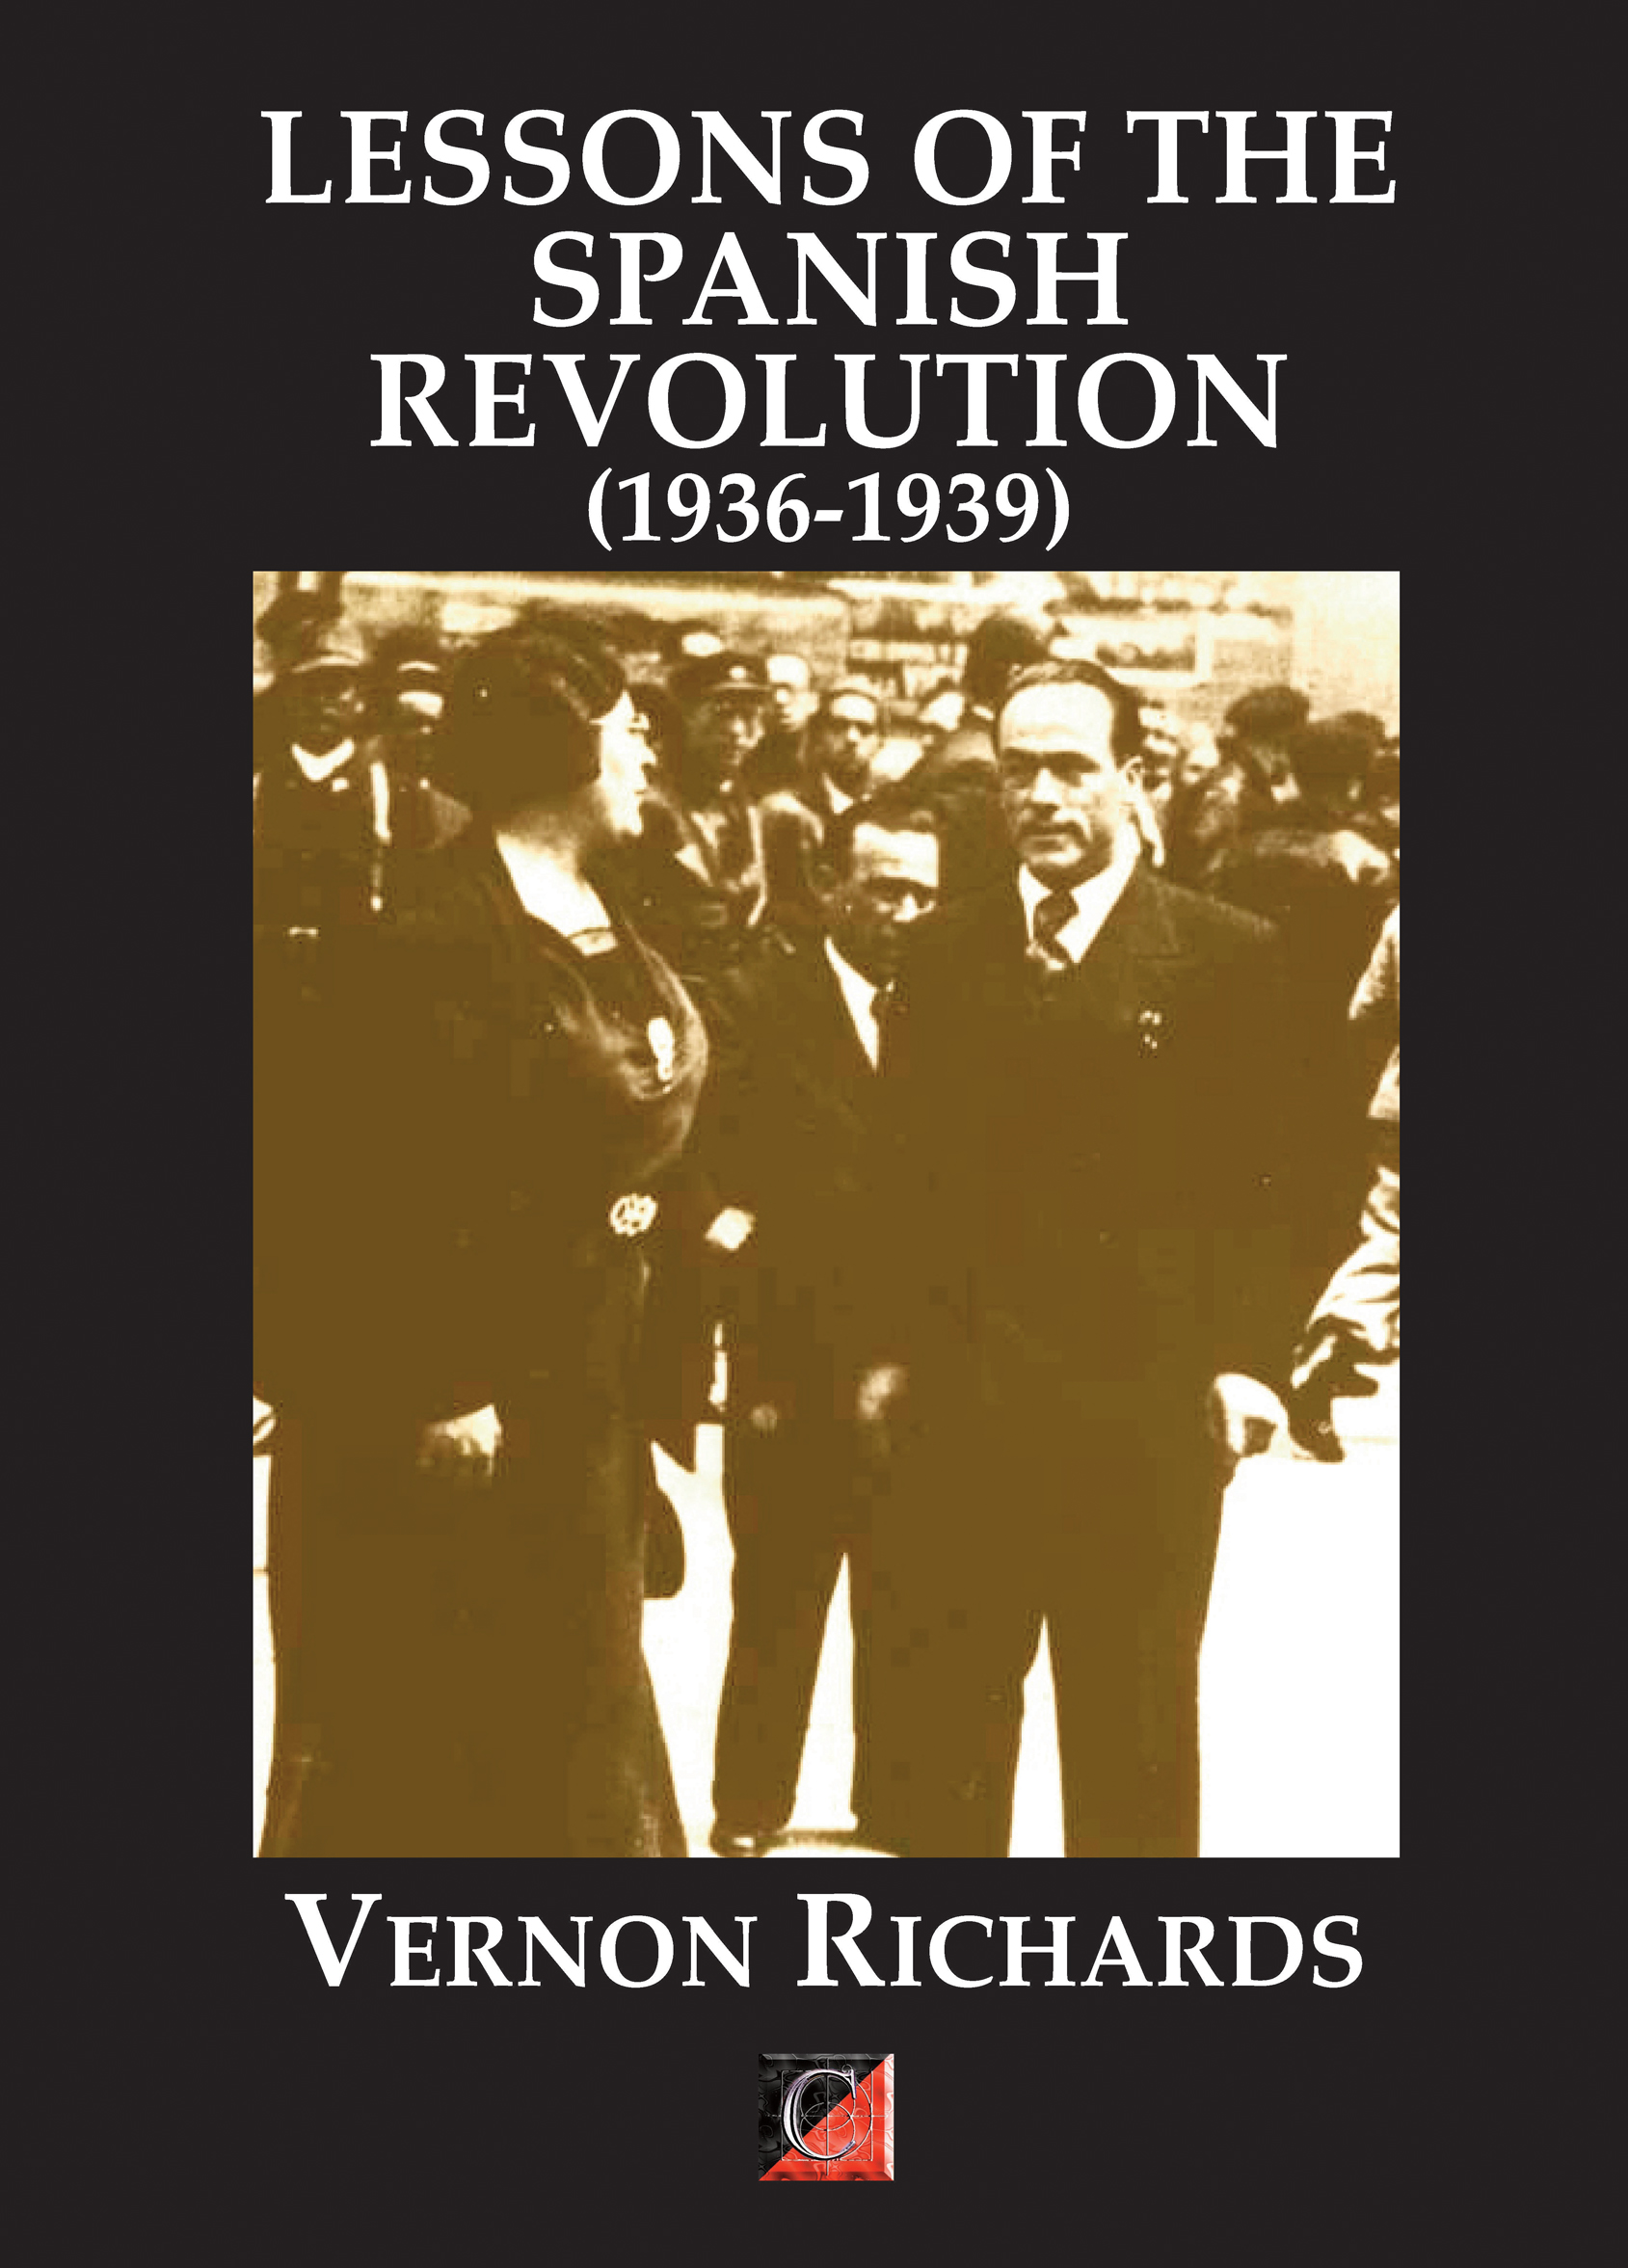 LESSONS OF THE SPANISH REVOLUTION (1936-1939) Vernon Richards